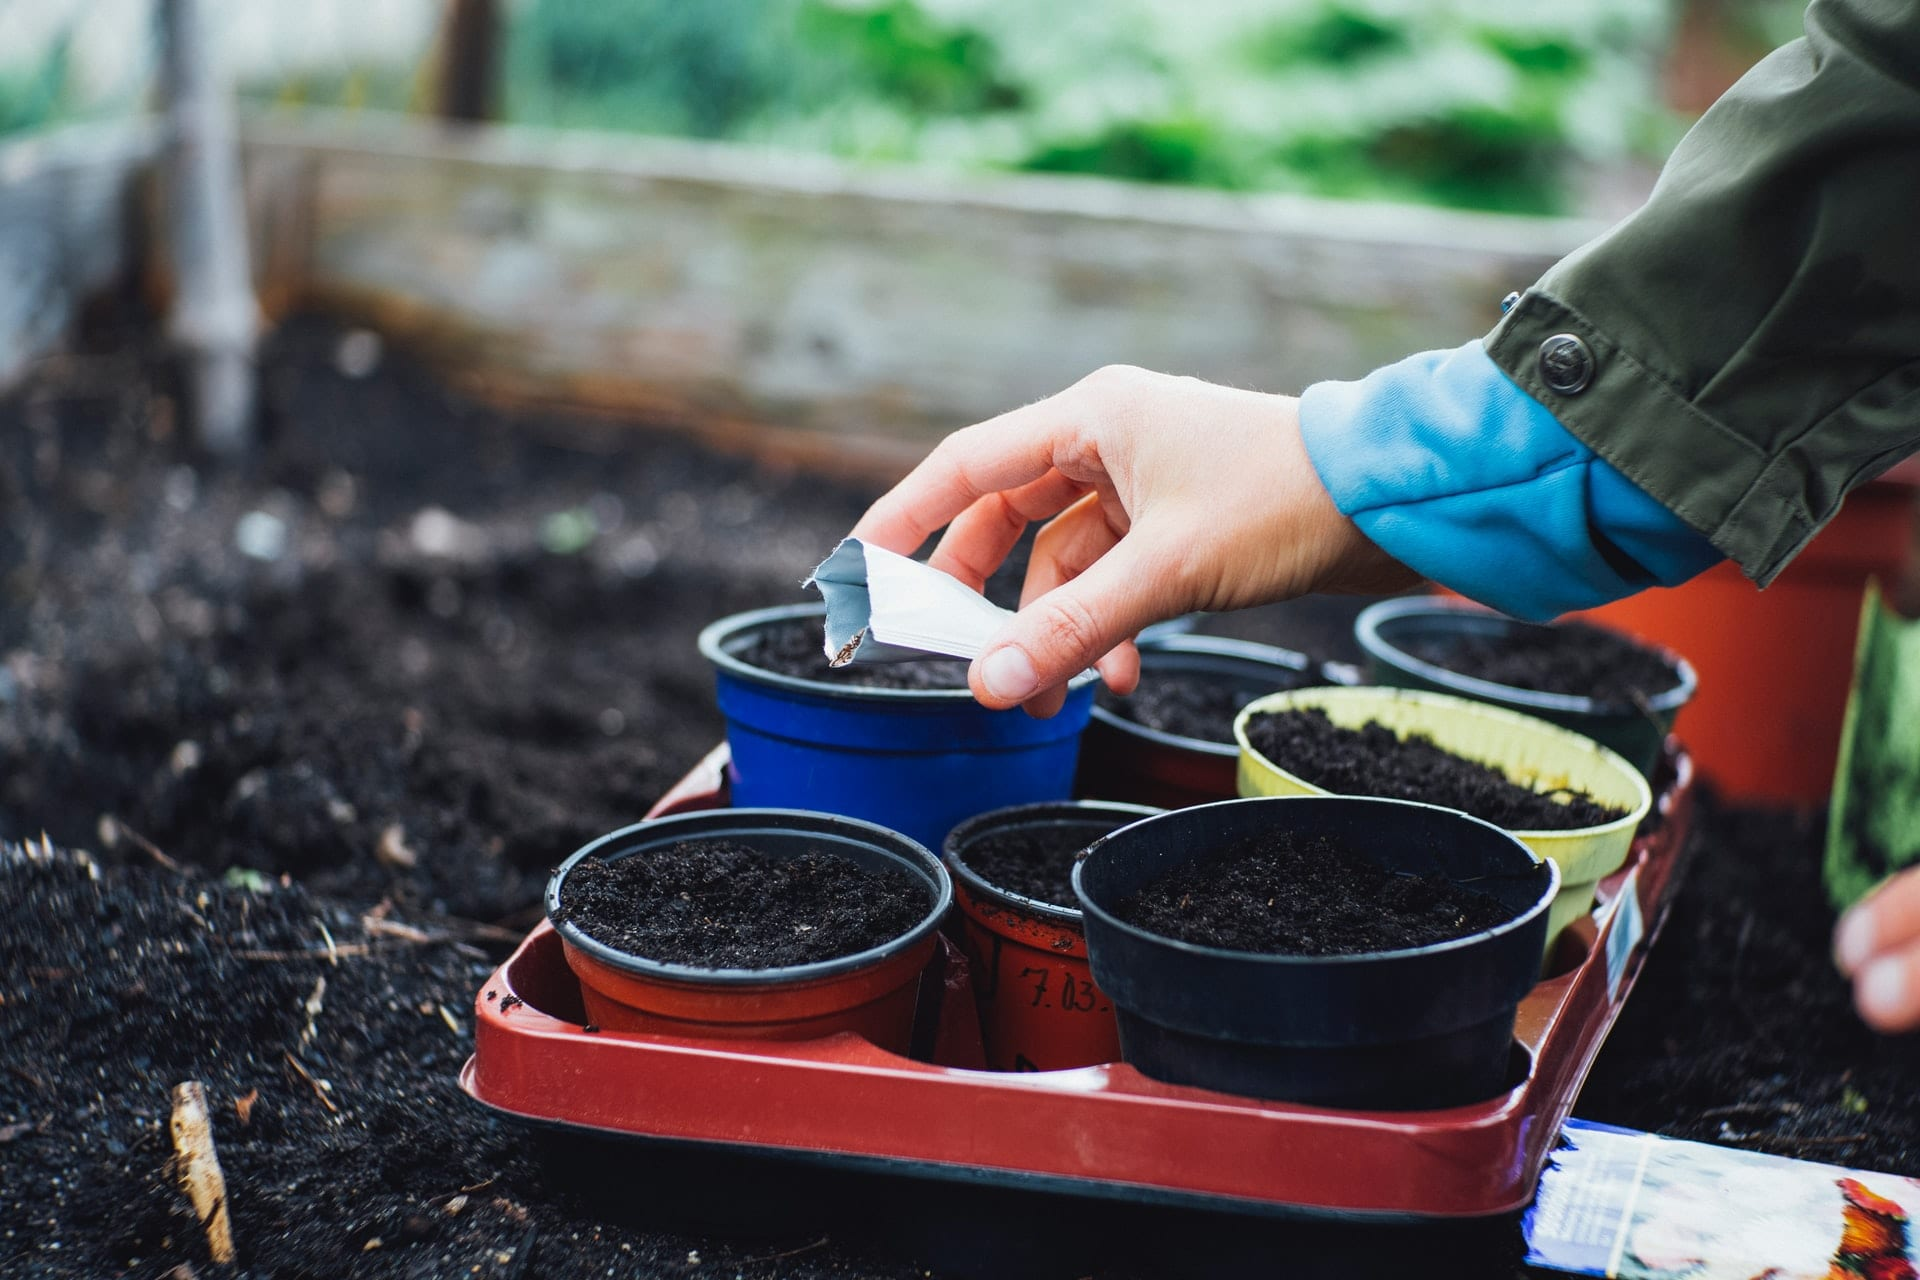 A person sowing seeds in small pots